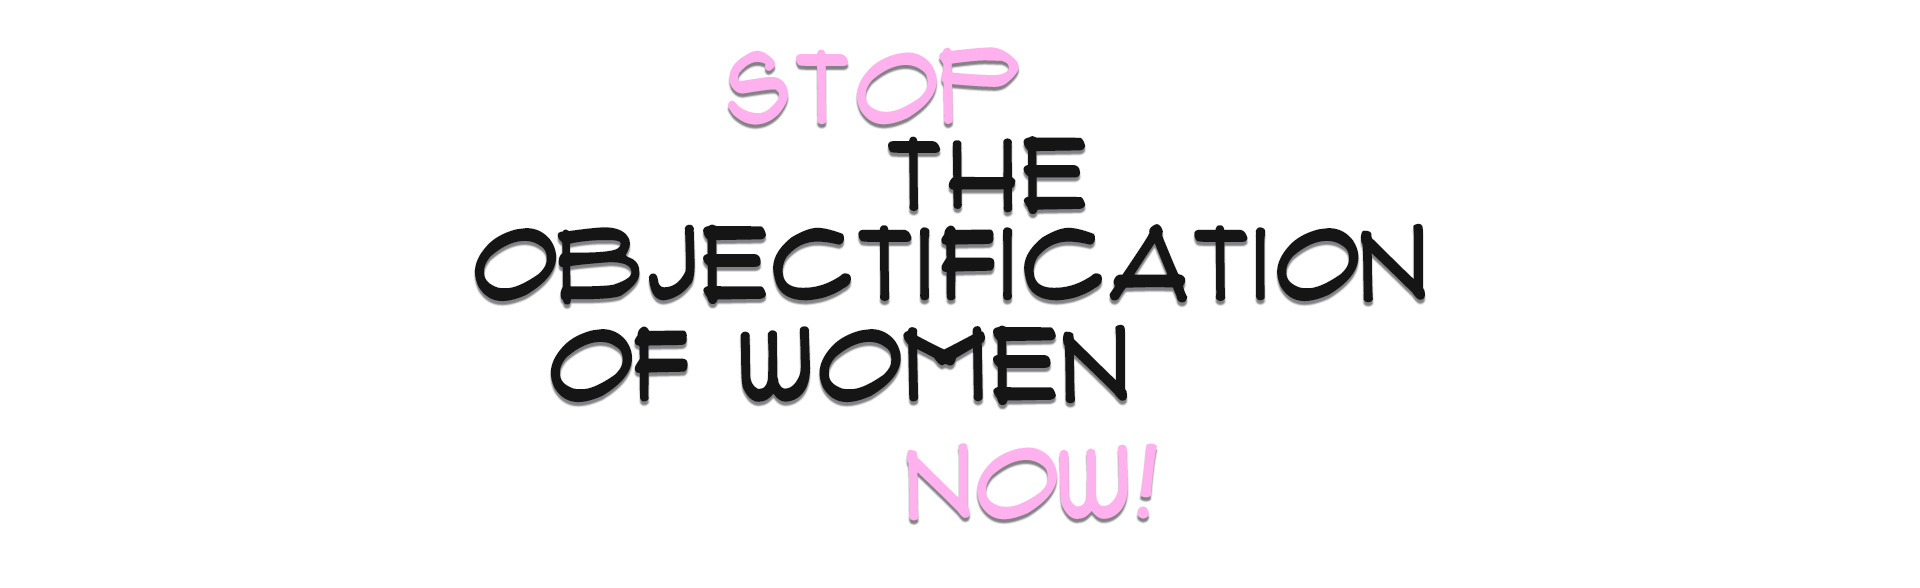 STOP THE OBJECTIFICATION OF WOMEN NOW!